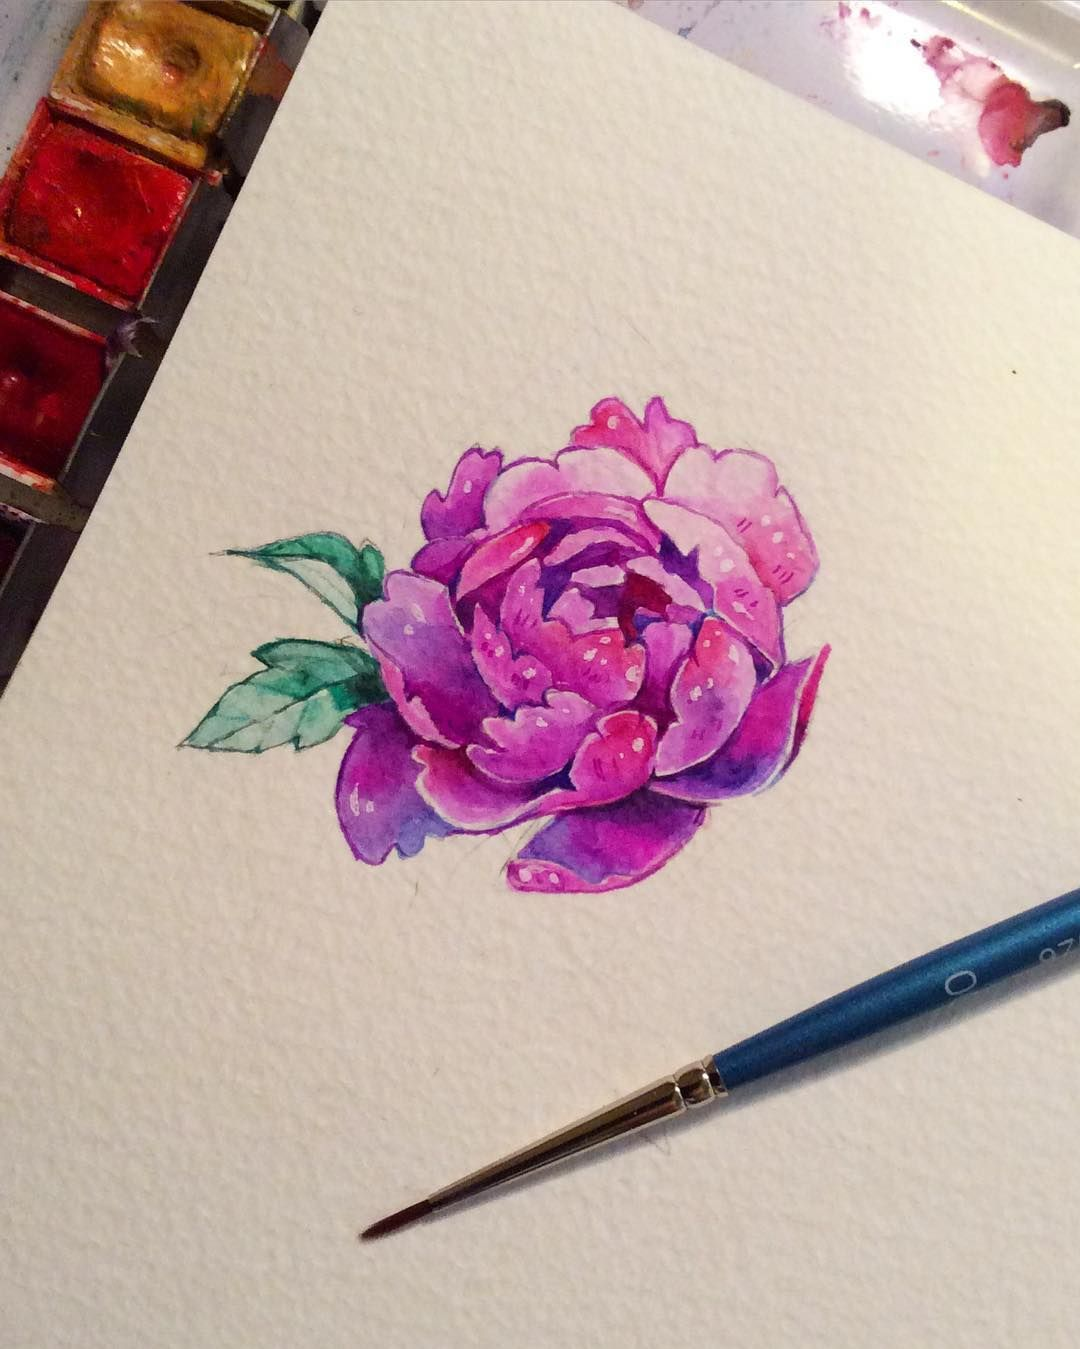 Heres a small peony flower for all you lovely folks out there